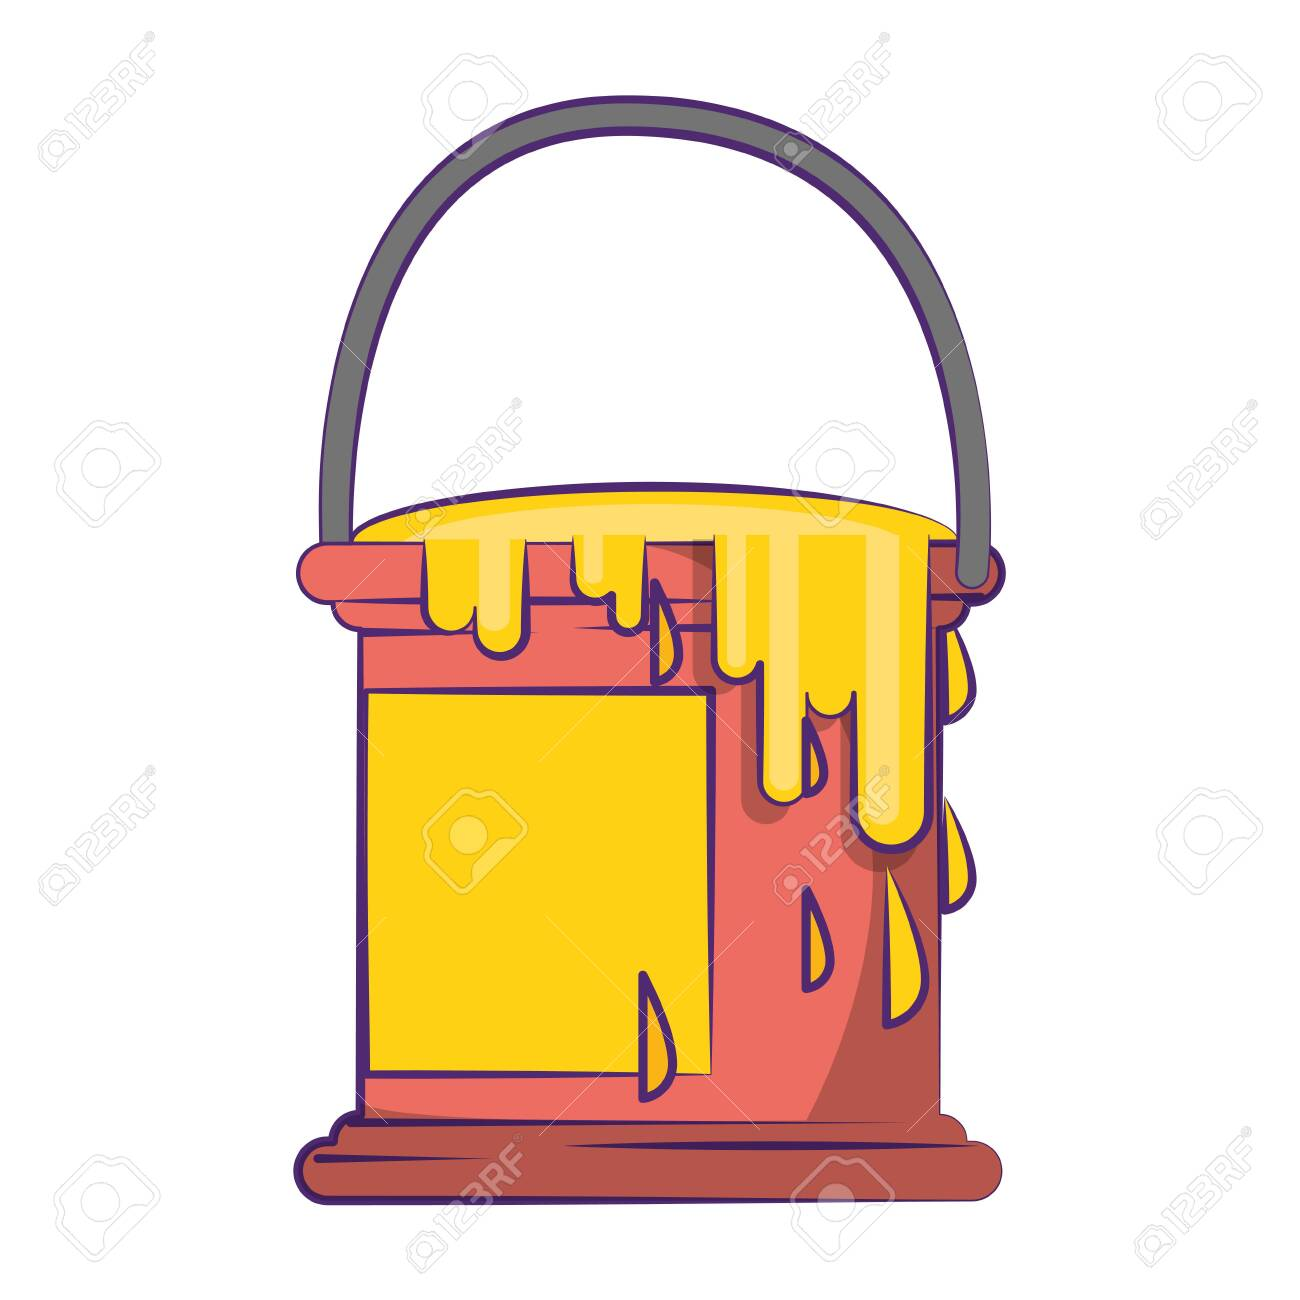 Paint Bucket Ith Splash Symbol Isolated Illustration Editable Royalty Free Cliparts Vectors And Stock Illustration Image 129260769